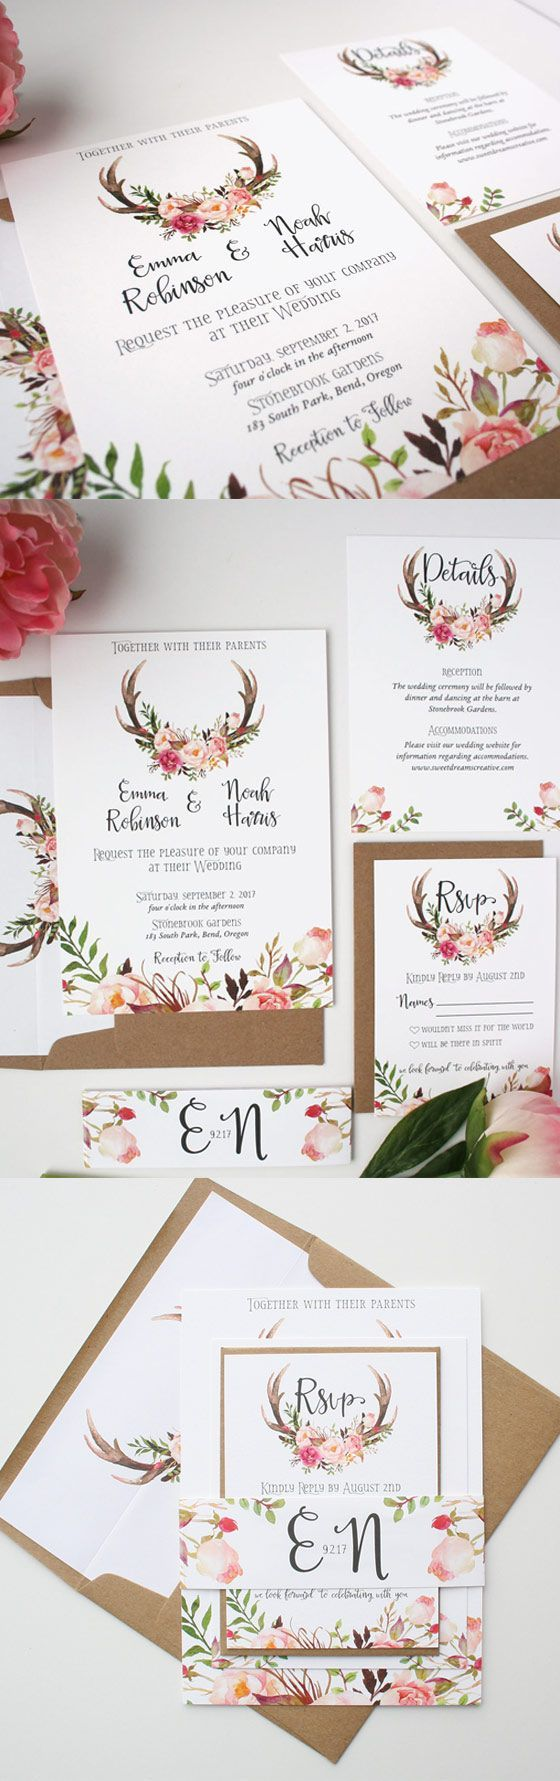 second wedding invitations wording%0A Antler Wedding Invitations  Blush Pink  Wedding Invitations  Floral  Antler Collection Sample Set